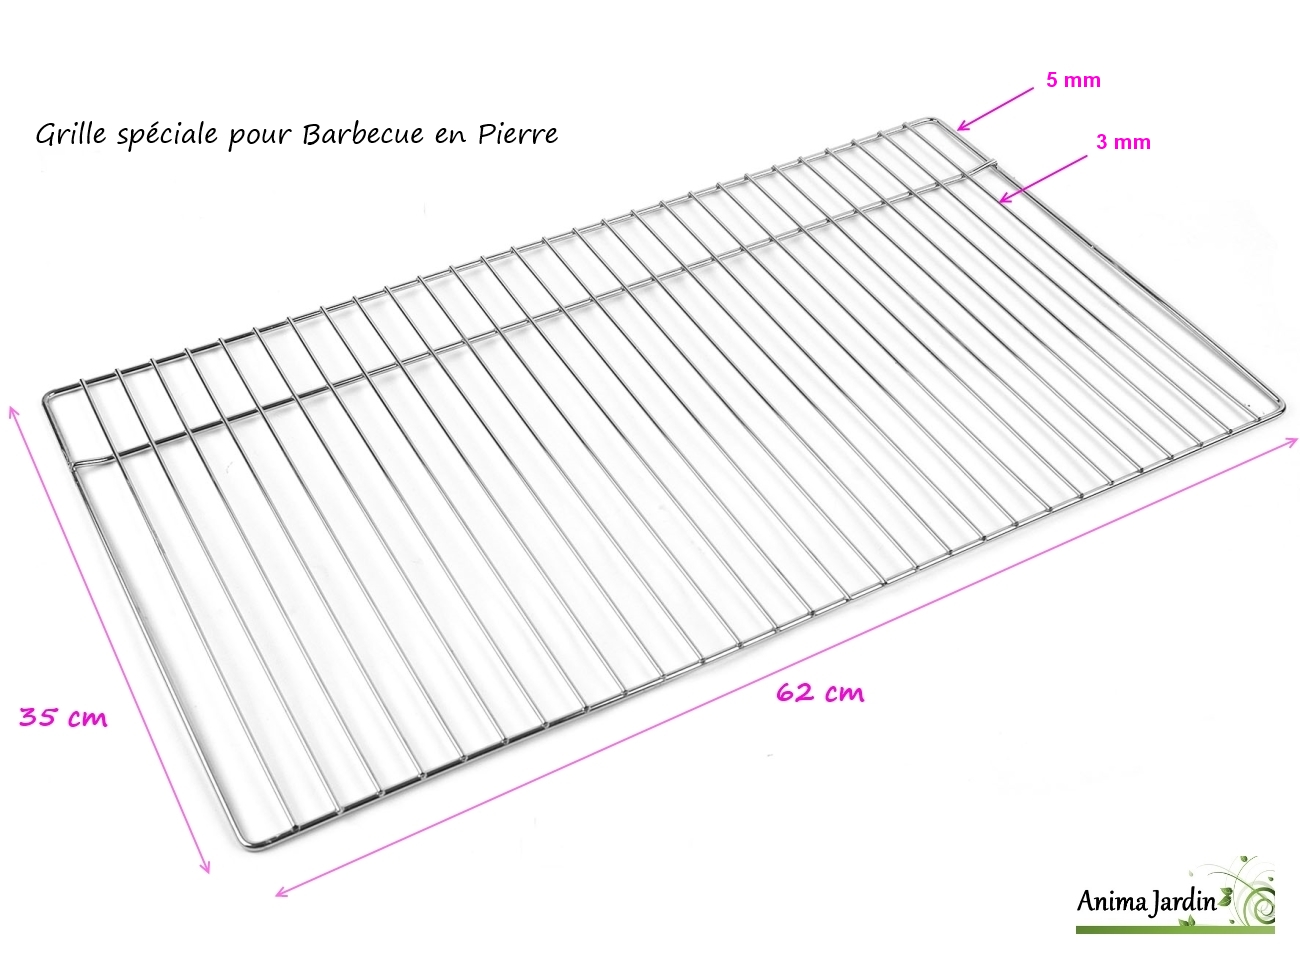 Grille-barbecue-62x35cm-remplacement-anima-jardin.fr